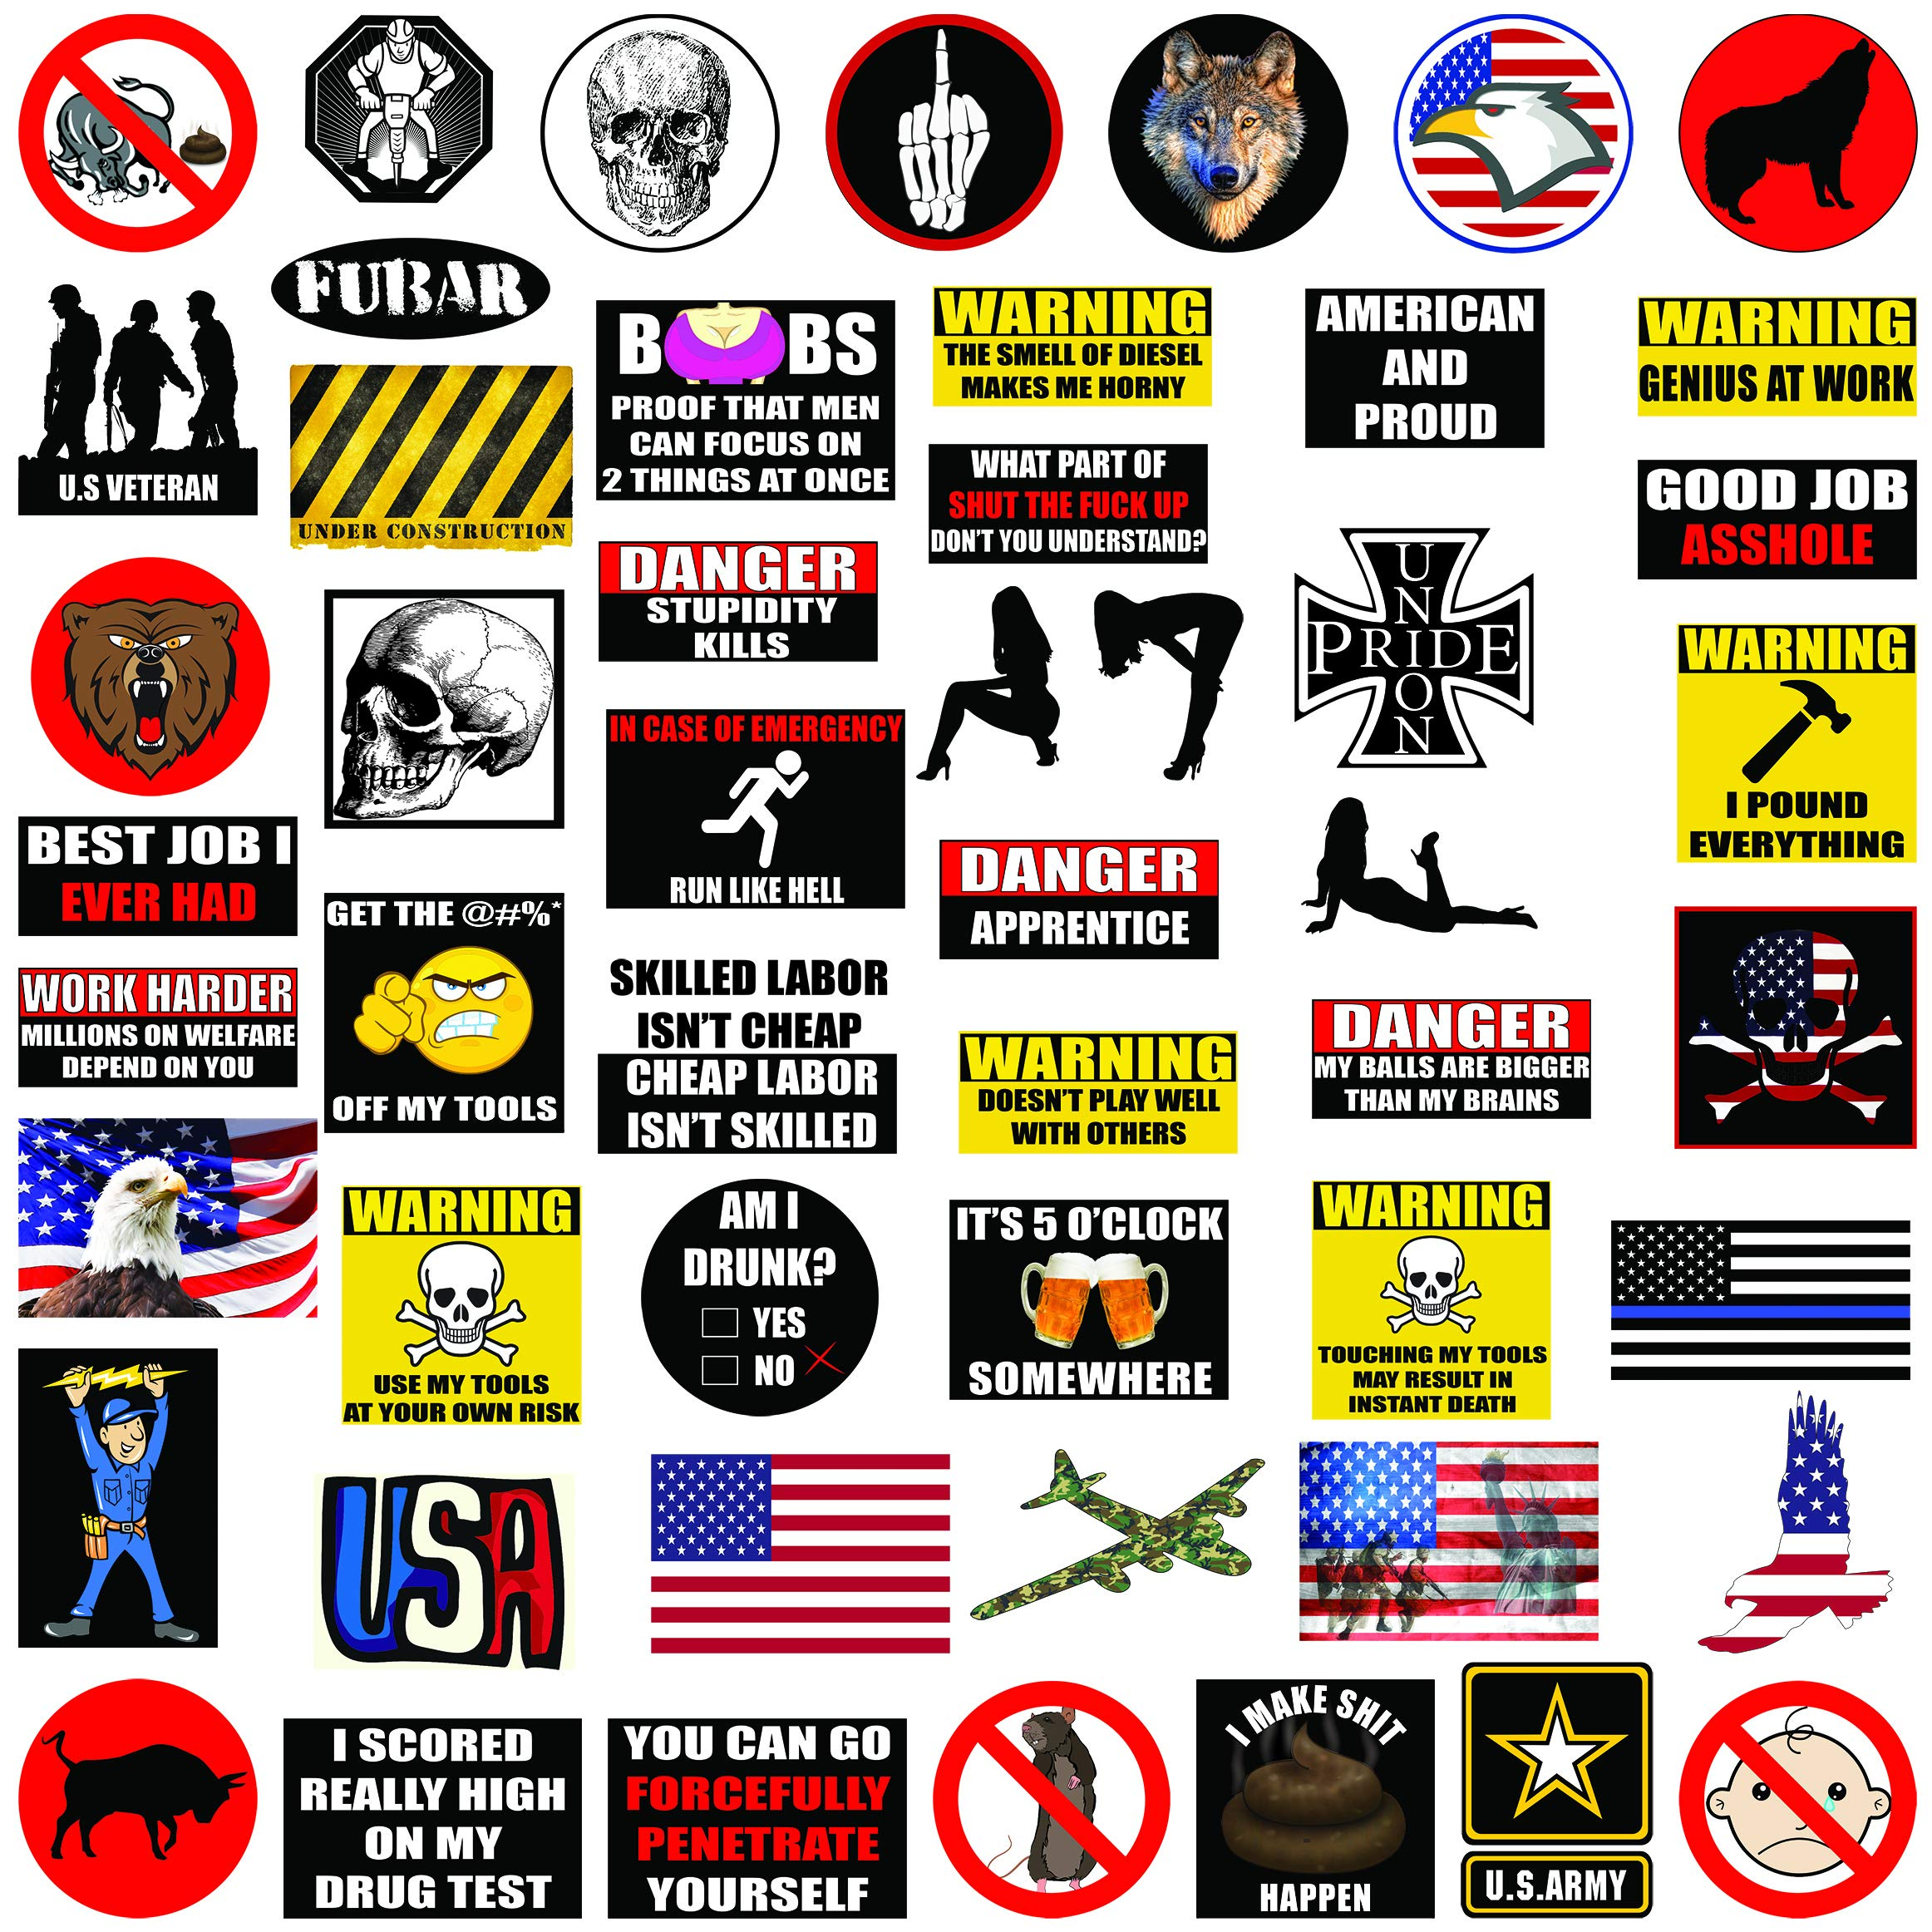 Hard Hat Stickers 50+ MEGA PACK, Tool Box Stickers and Decals, Funny Construction, Military, Veteran, Union, Patriotic USA Stickers, Make People Laugh at Work